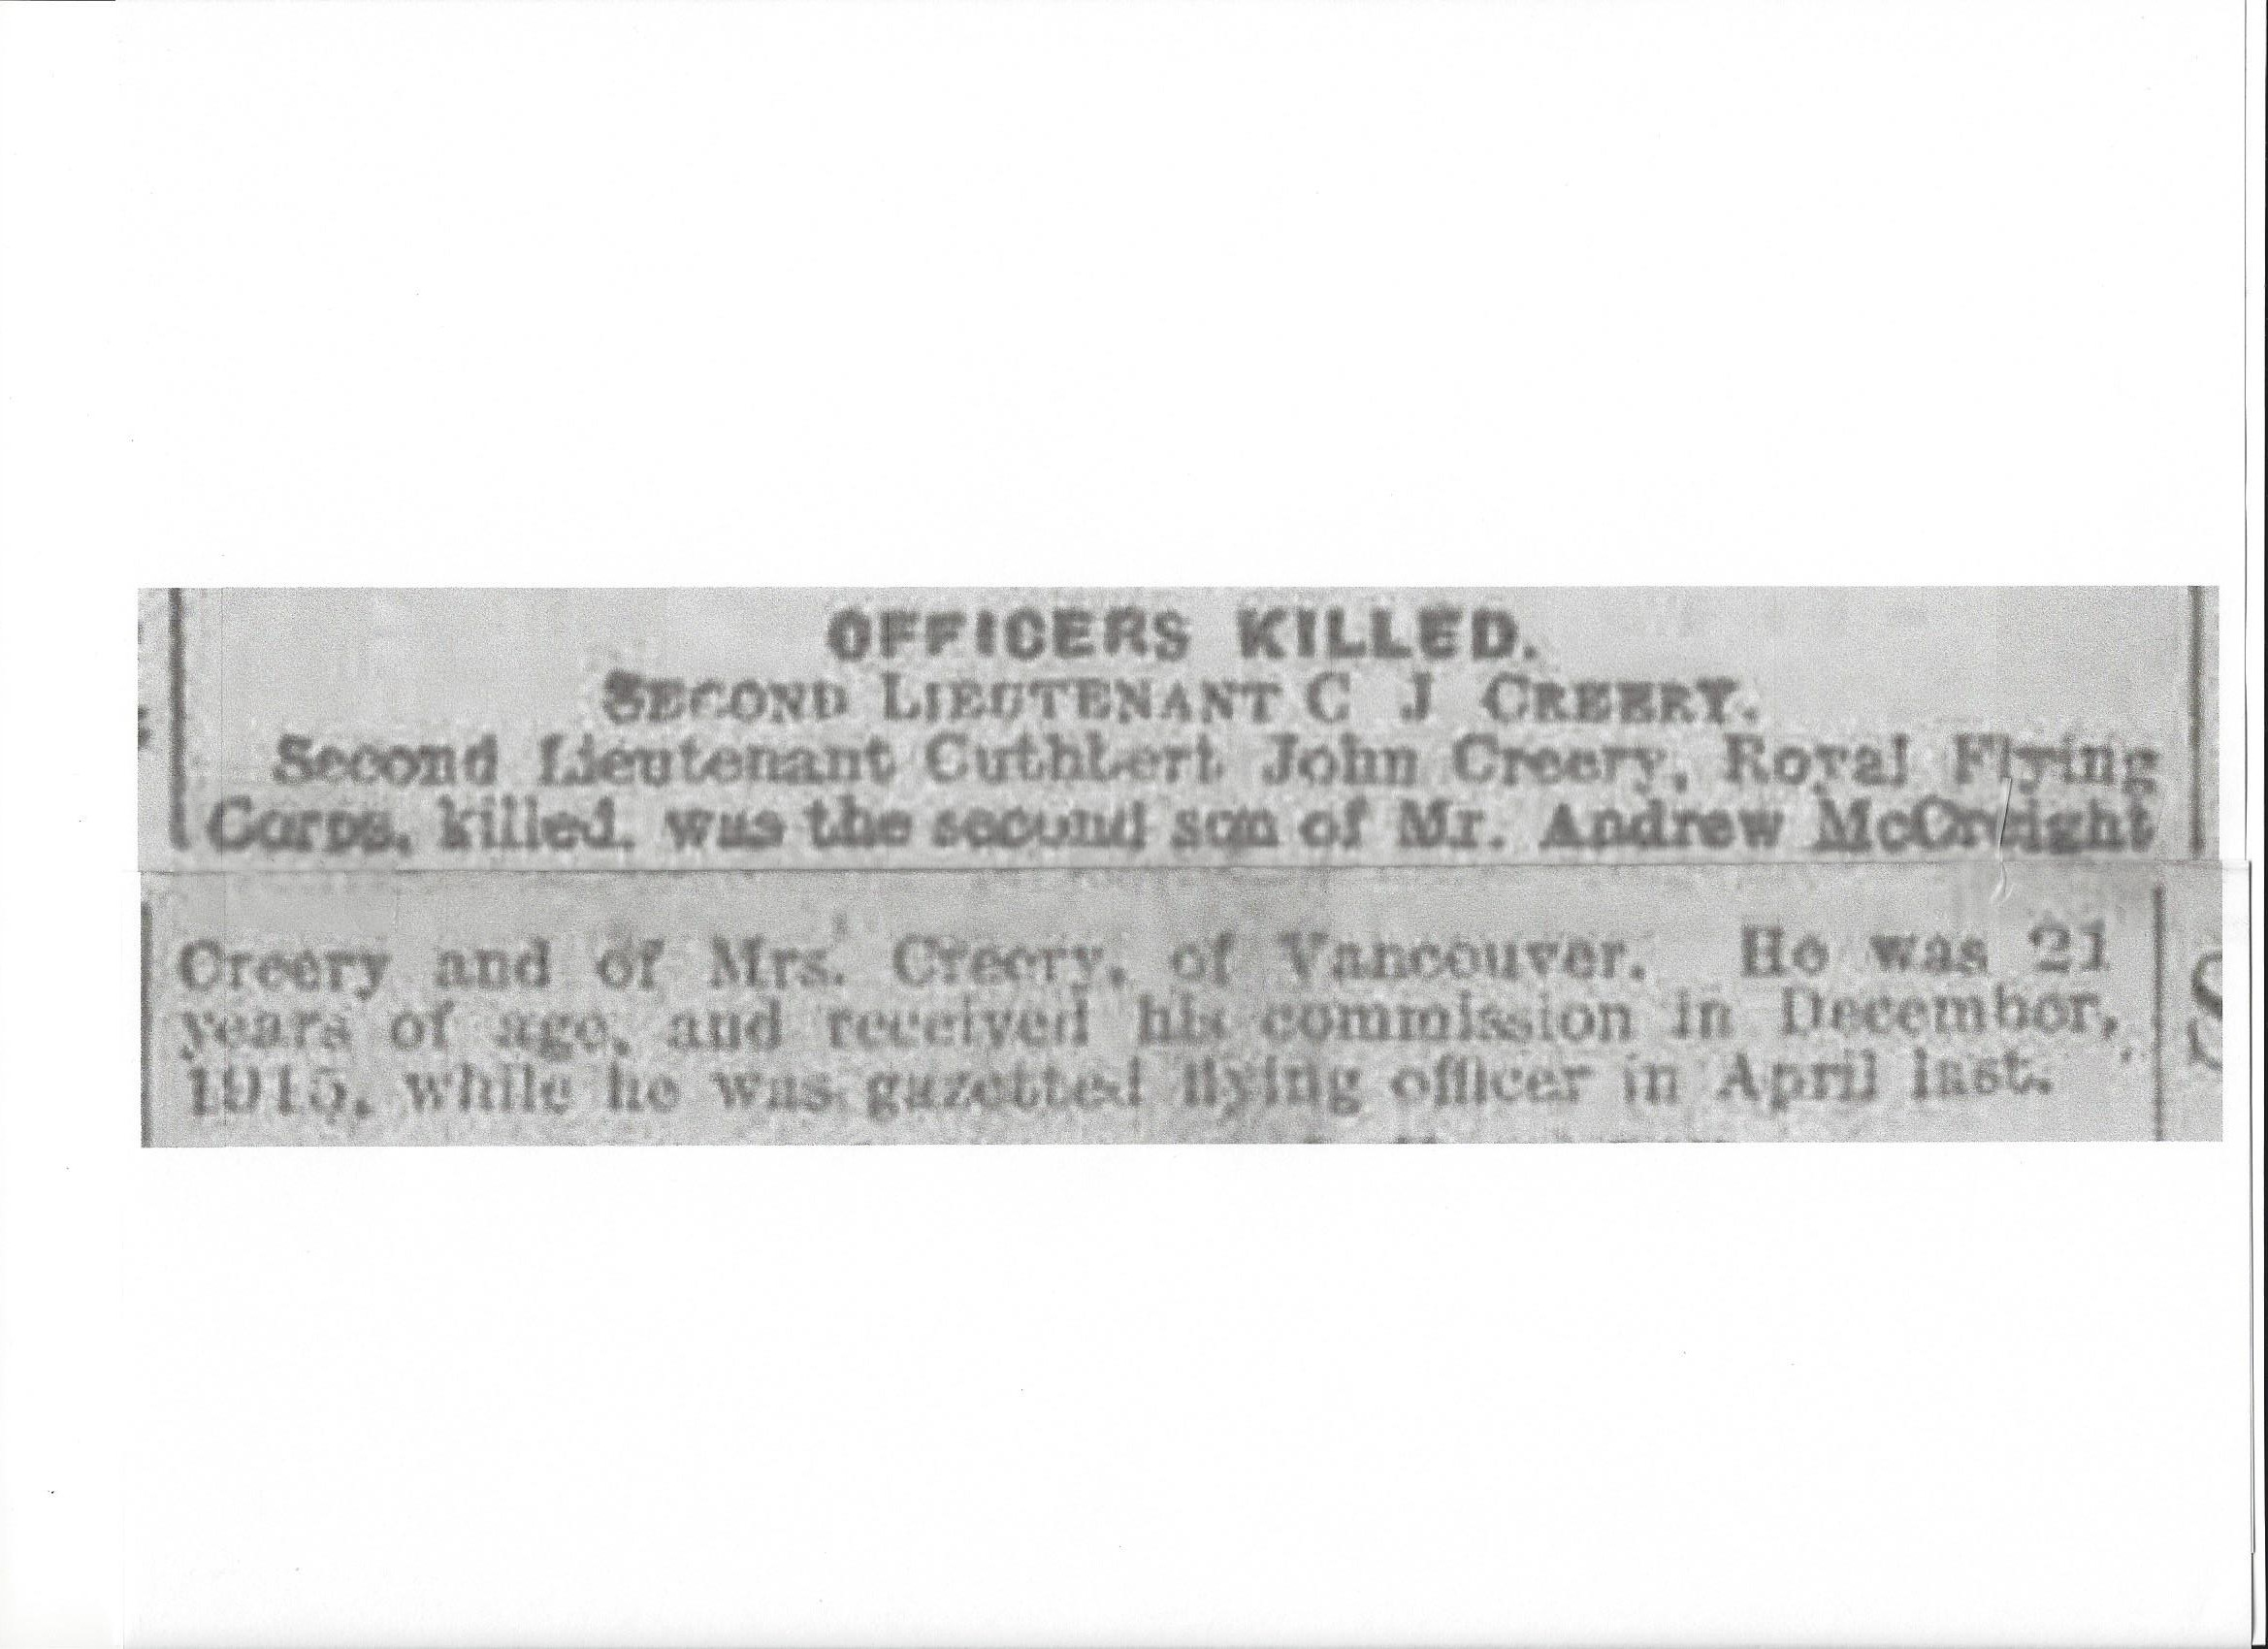 Newspaper Clipping– Newspaper clipping from Daily Telegraph of November 20, 1916. Image taken from web address of http://www.telegraph.co.uk/news/ww1-archive/12213828/Daily-Telegraph-November-20-1916.html